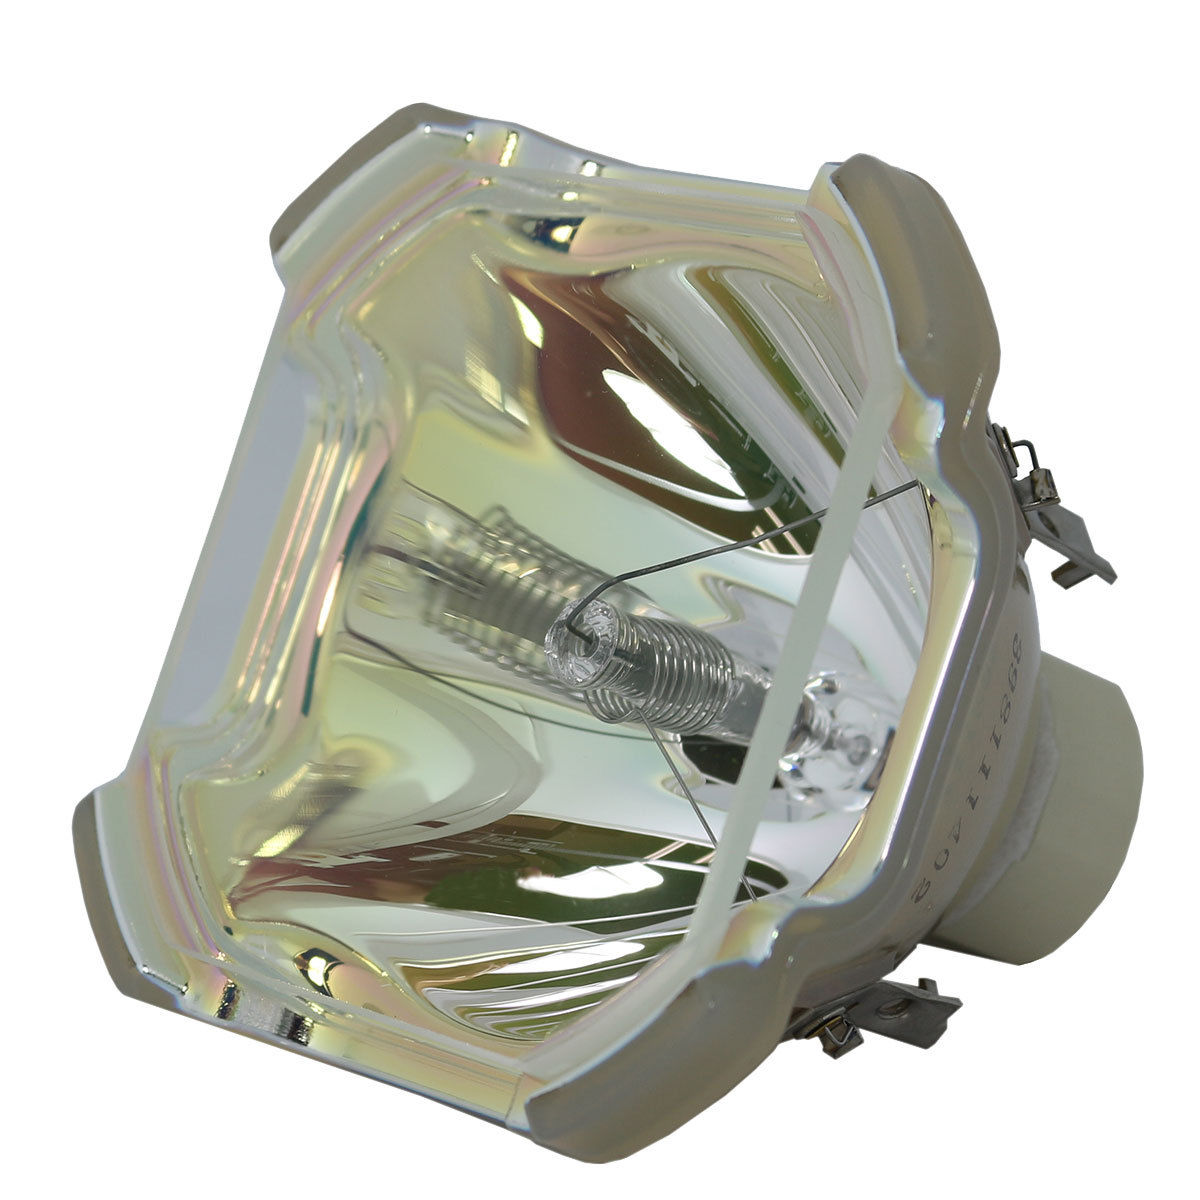 Compatible Bare Bulb POA-LMP128 LMP128 610-341-9497 for SANYO PLC-XF71 PLC-XF1000 Projector Lamp Bulb without housing compatible projector lamp for sanyo 610 282 2755 poa lmp24 plc xp17 plc xp17e plc xp17n plc xp18 plc xp18e plc xp18n plc xp20